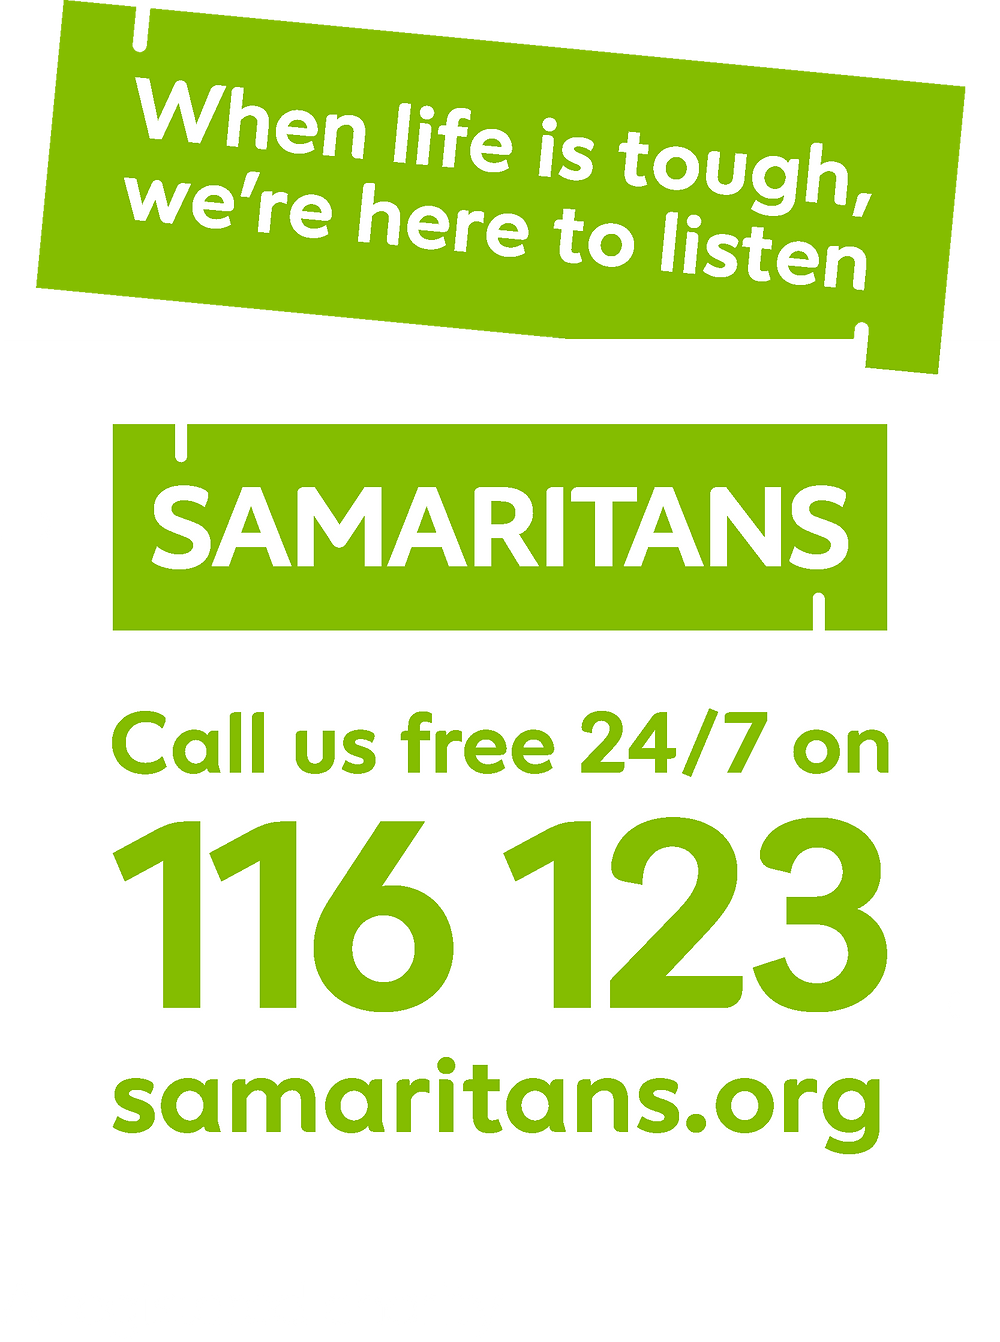 Samaritans Call Us free 24/7 on 116 123